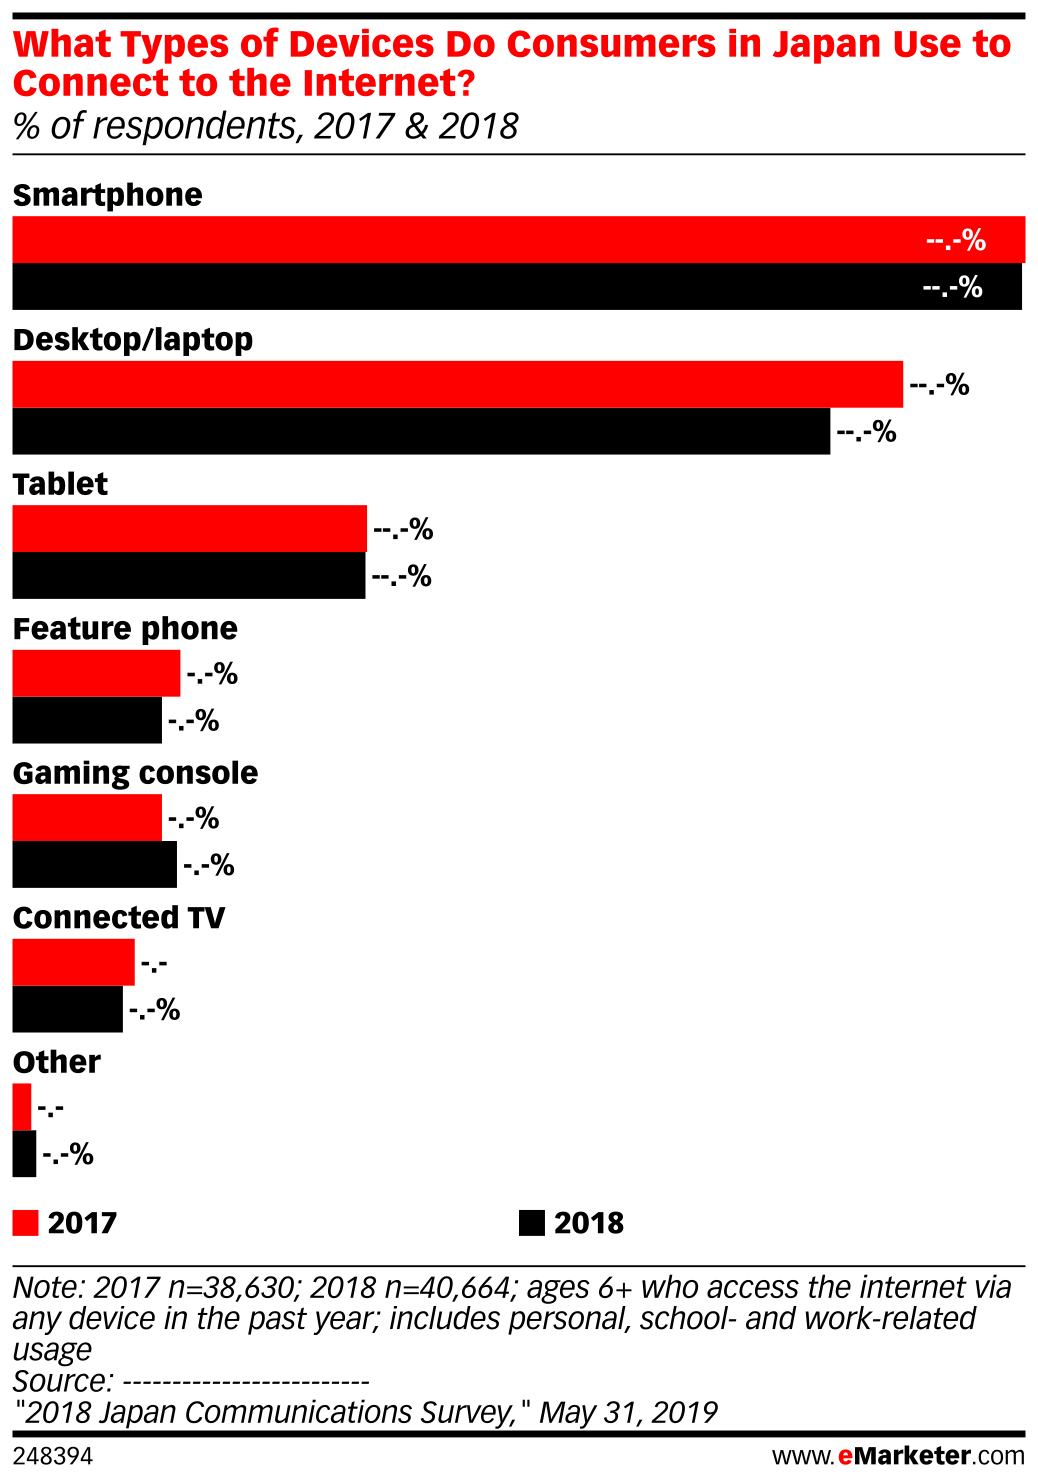 What Types of Devices Do Consumers in Japan Use to Connect to the Internet? (% of respondents, 2017 & 2018)